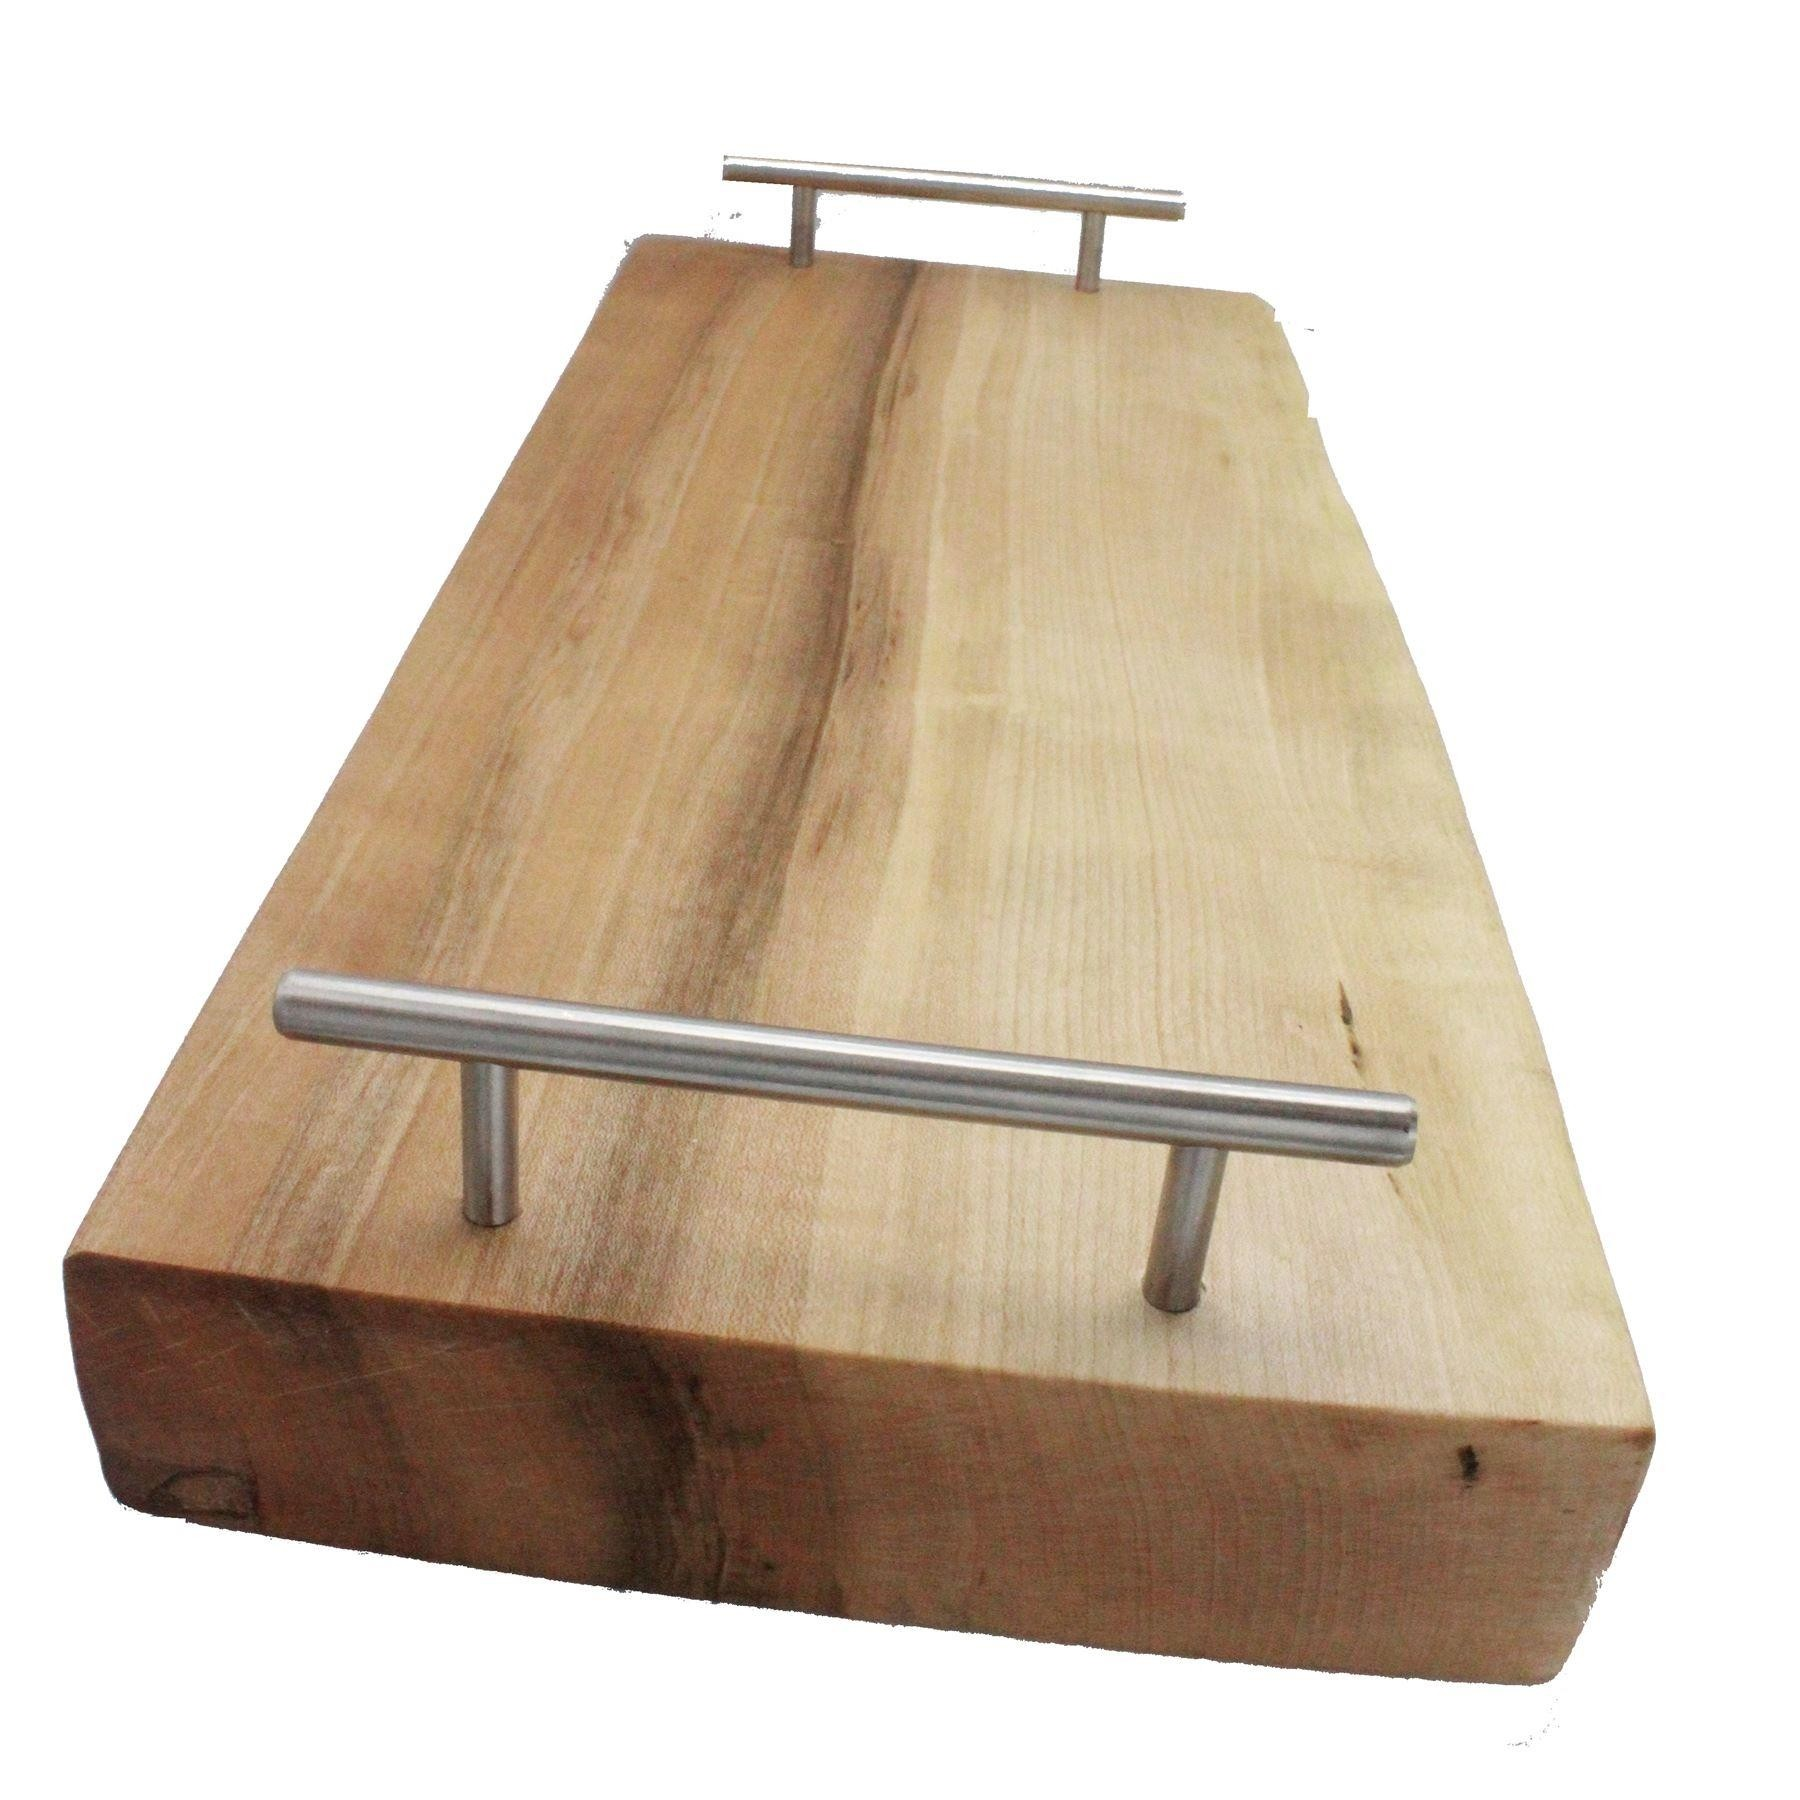 Chef wooden chopping board one live edge Metal handle thick solid Ash